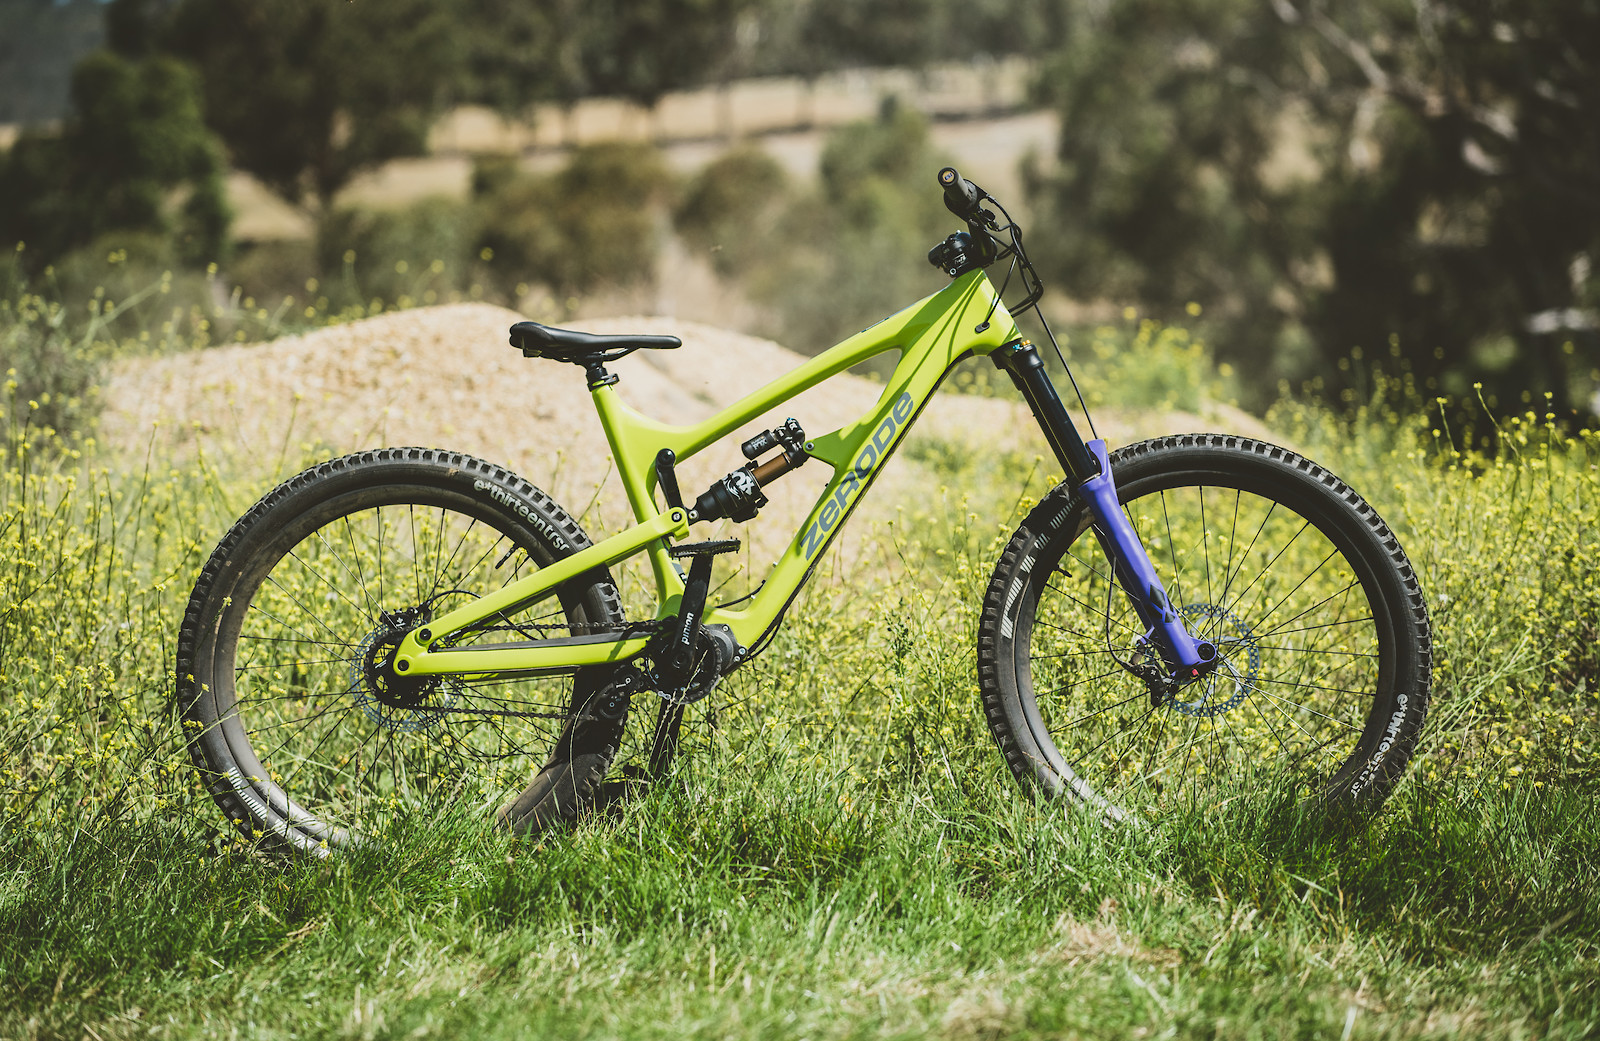 Zerode Taniwha - 2019 Vital Bike of the Day Collection - Mountain Biking Pictures - Vital MTB